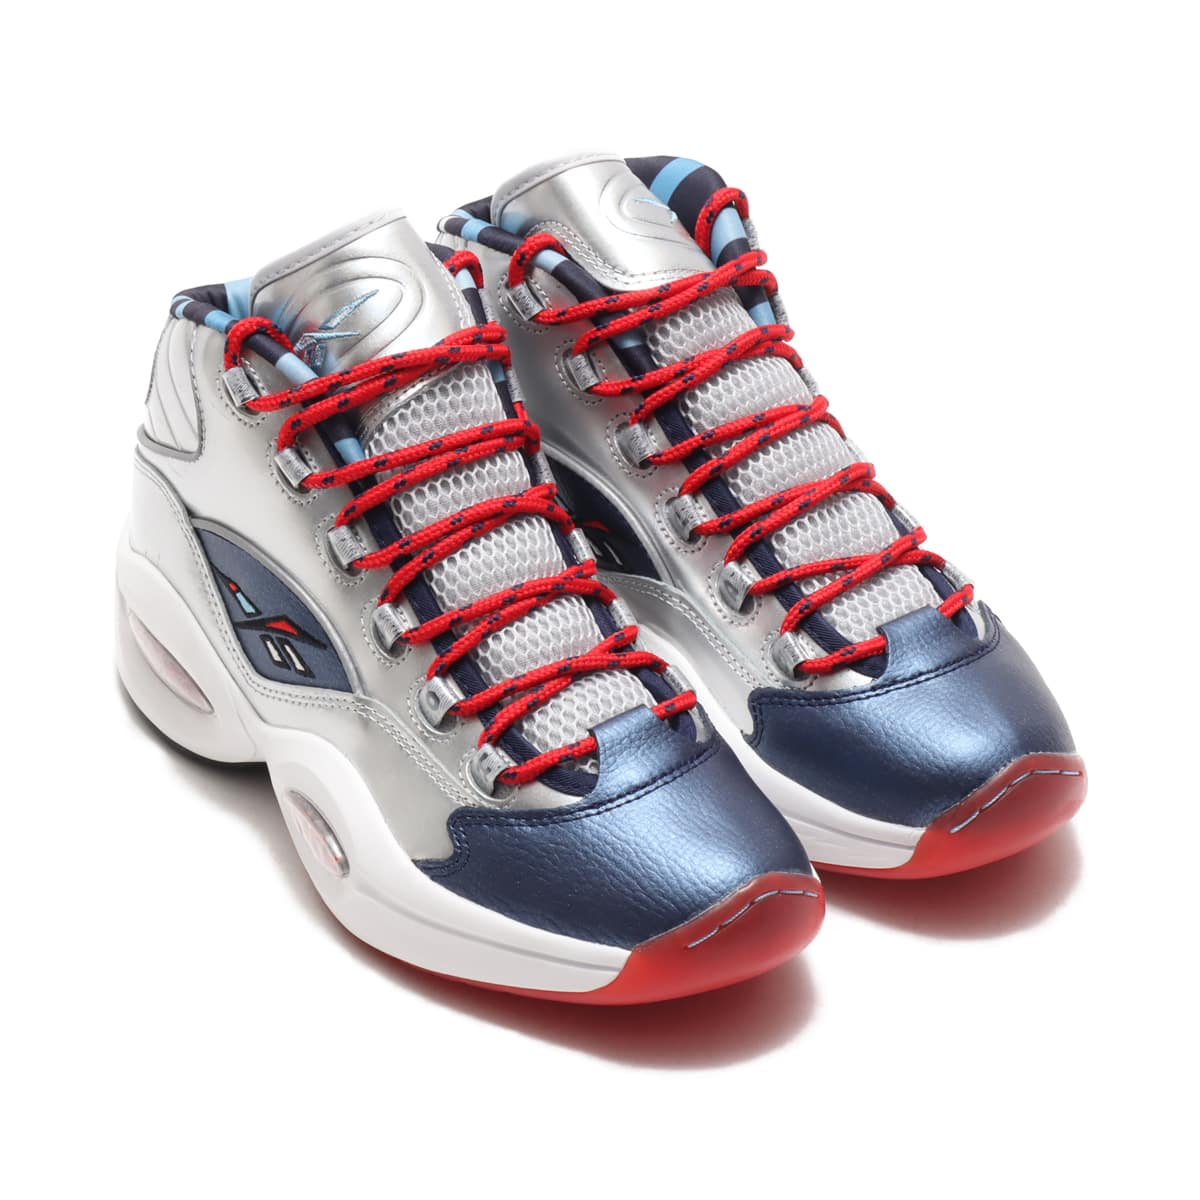 Reebok QUESTION MID MATT SILVER/BLUE CADET/PRIMAL RED 20FW-I_photo_large